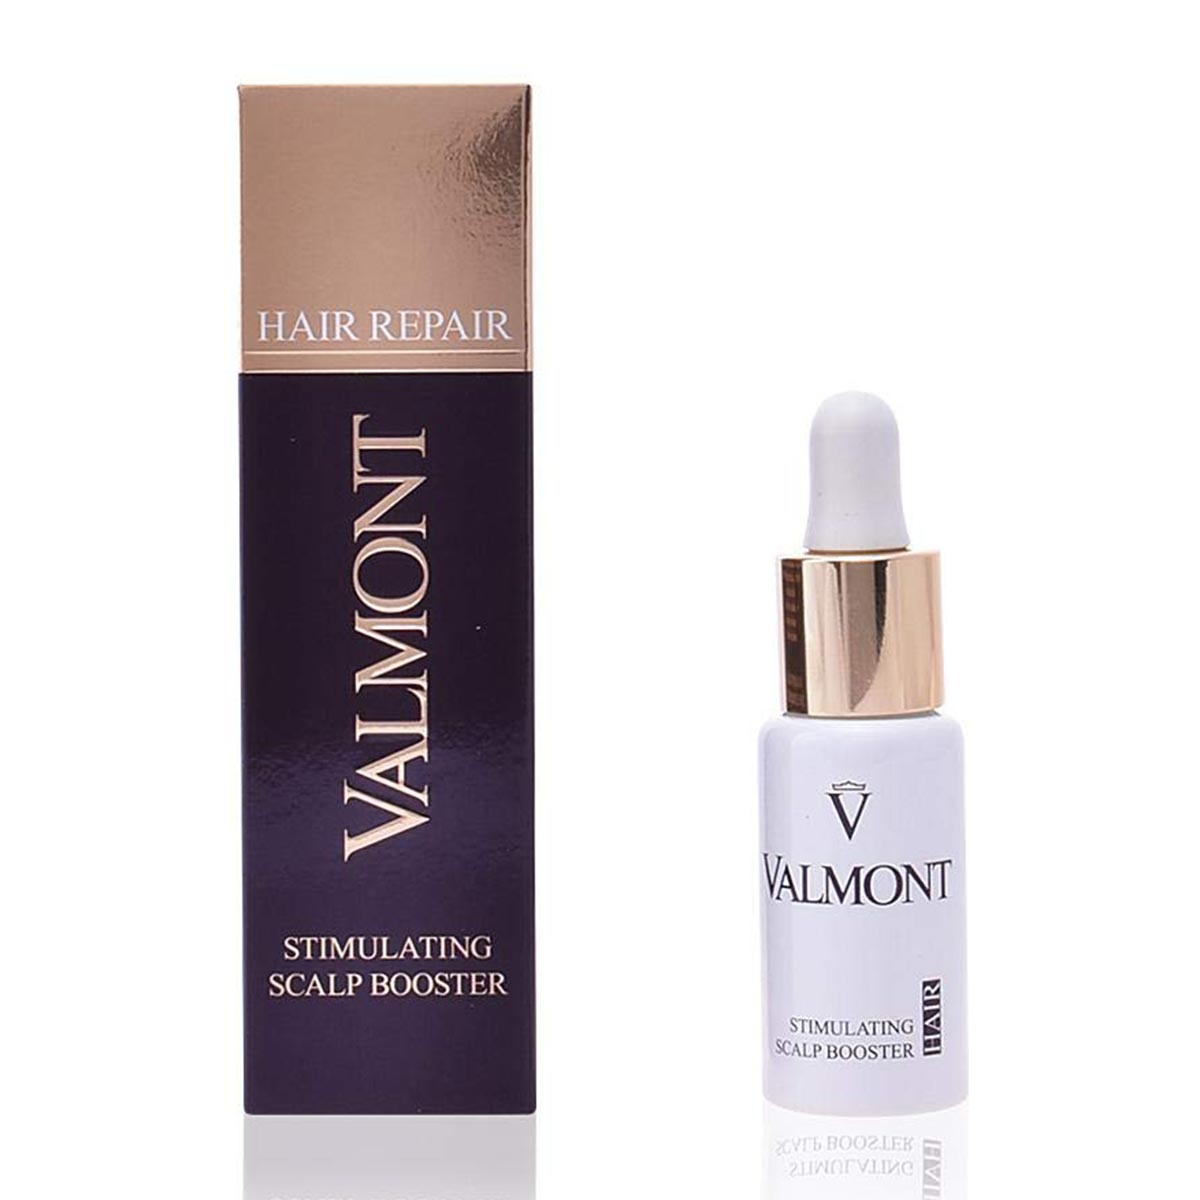 Valmont hair repair stimulating scalp booster 20ml